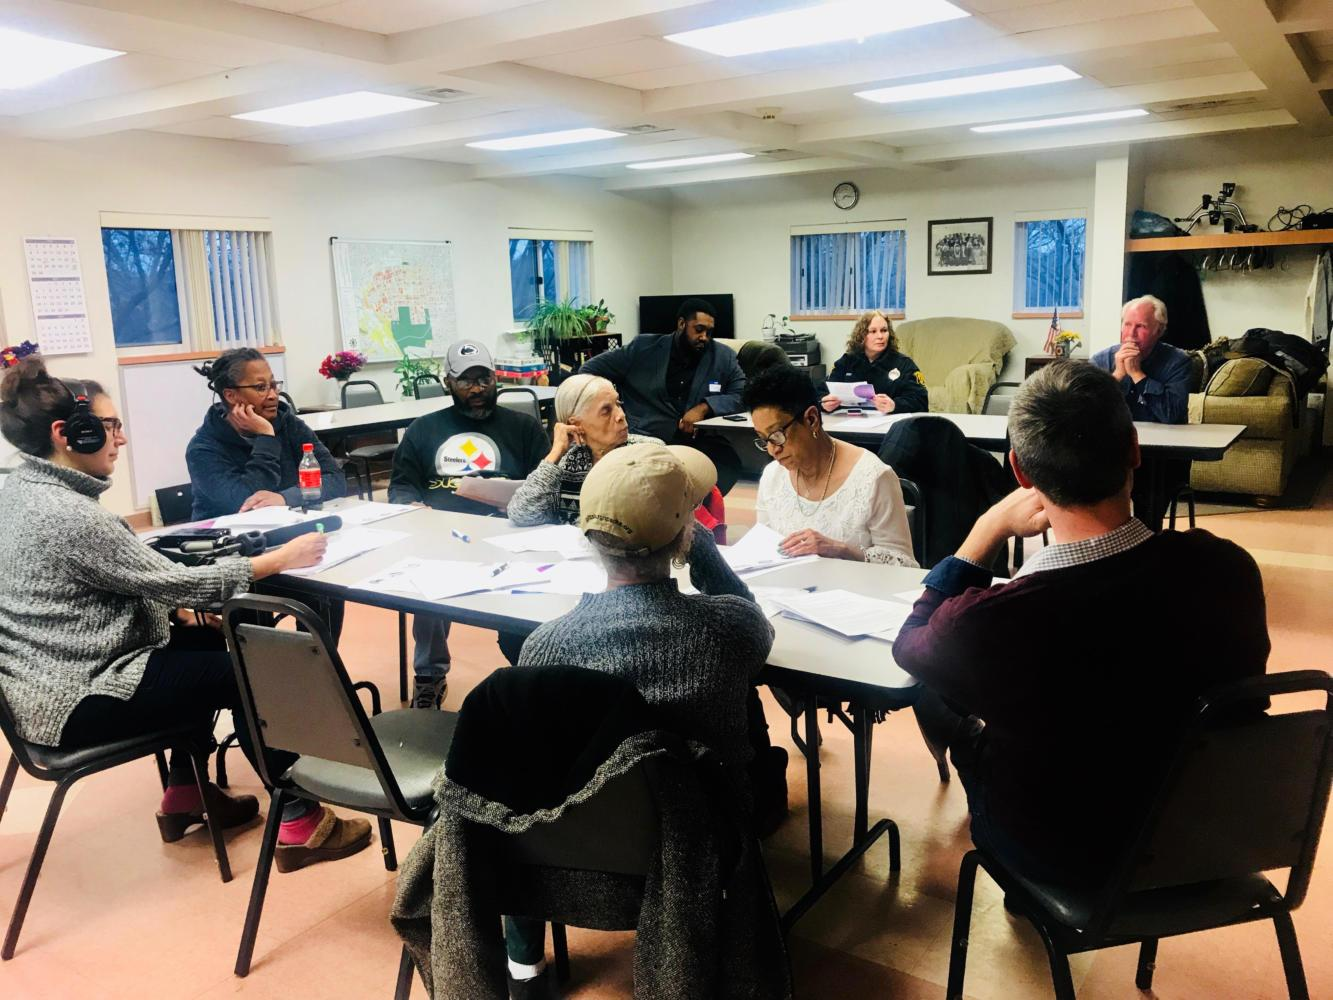 The first public meeting discussing the replacement of the Stephen Foster Memorial was held Tuesday in the McKinley Recreation Center in Beltzhoover. (Photo by Theresa Dickerson | Staff Writer)